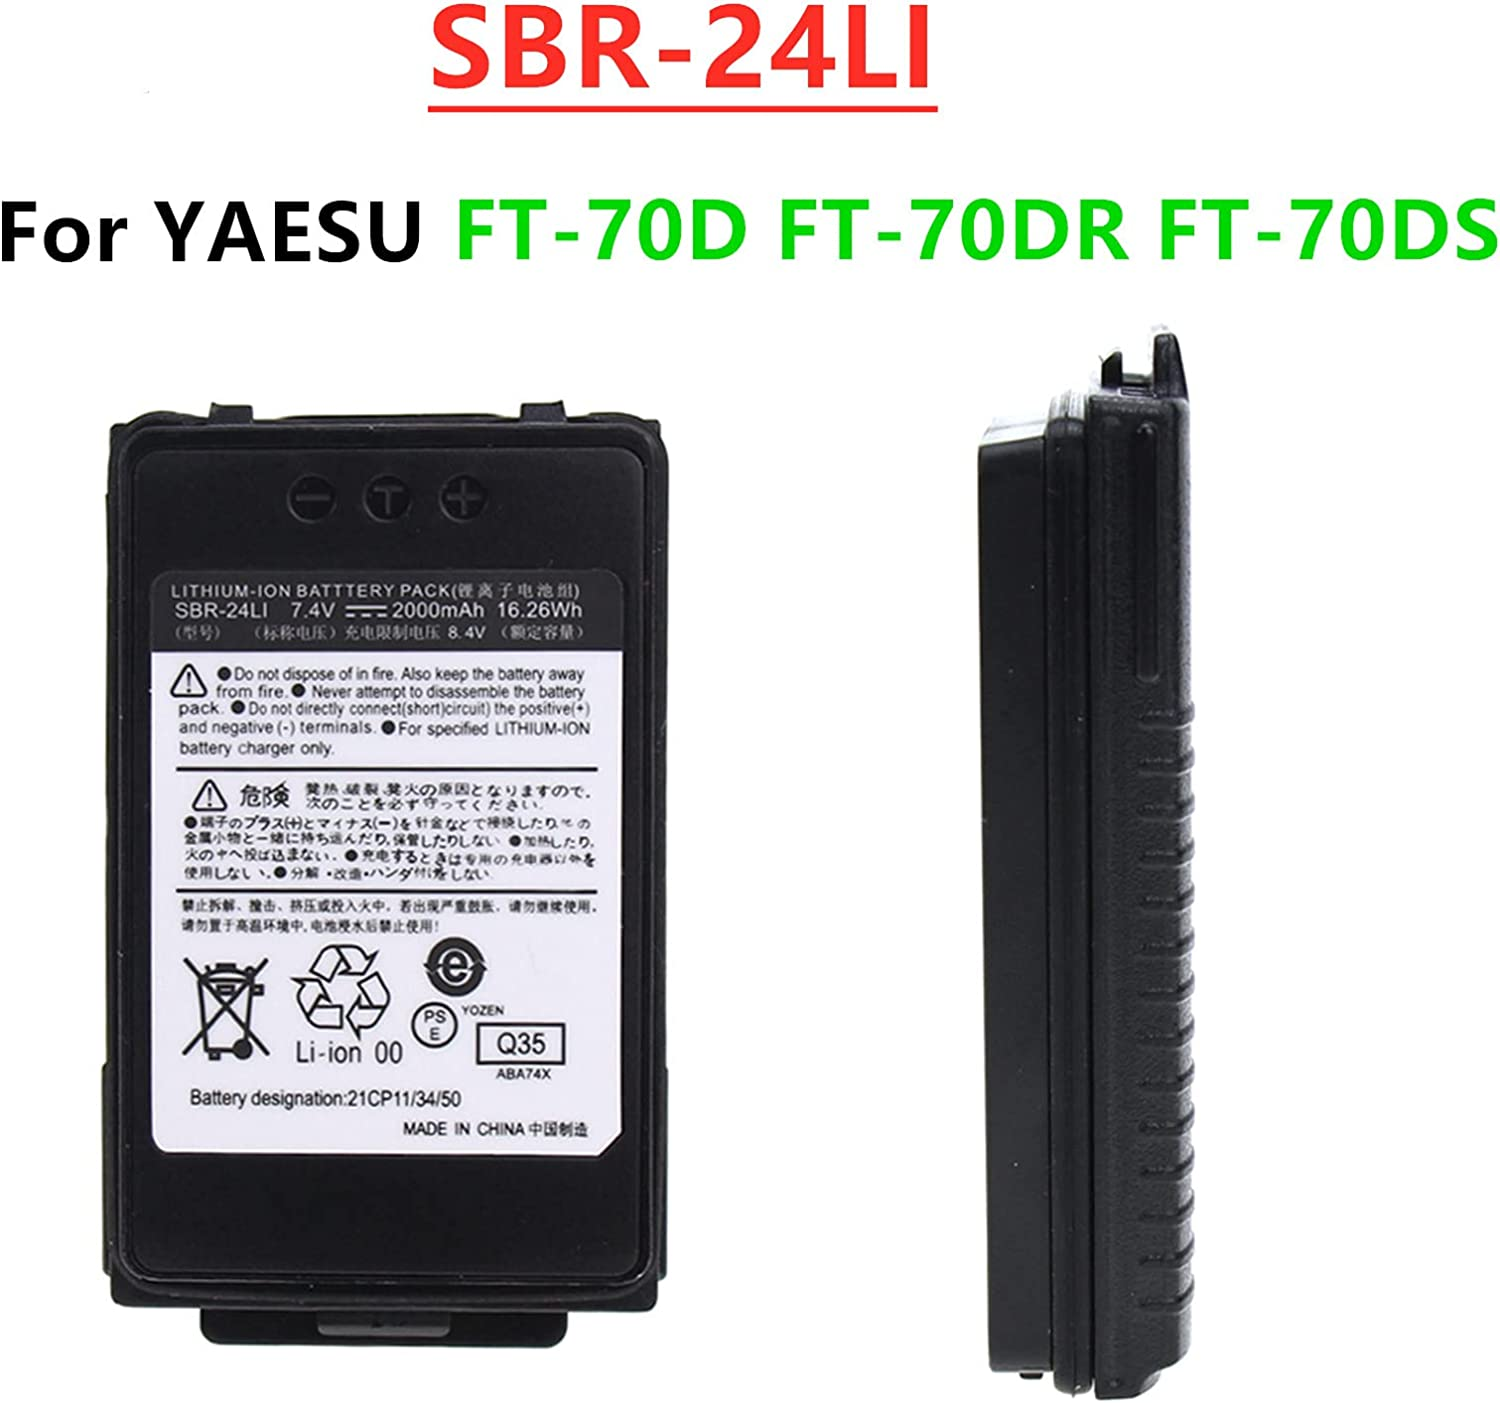 Walkie Talkie Battery 7.4v 2000mAh Li-on Replacement Battery for YAESU FT-70D FT-70DR FT-70DS